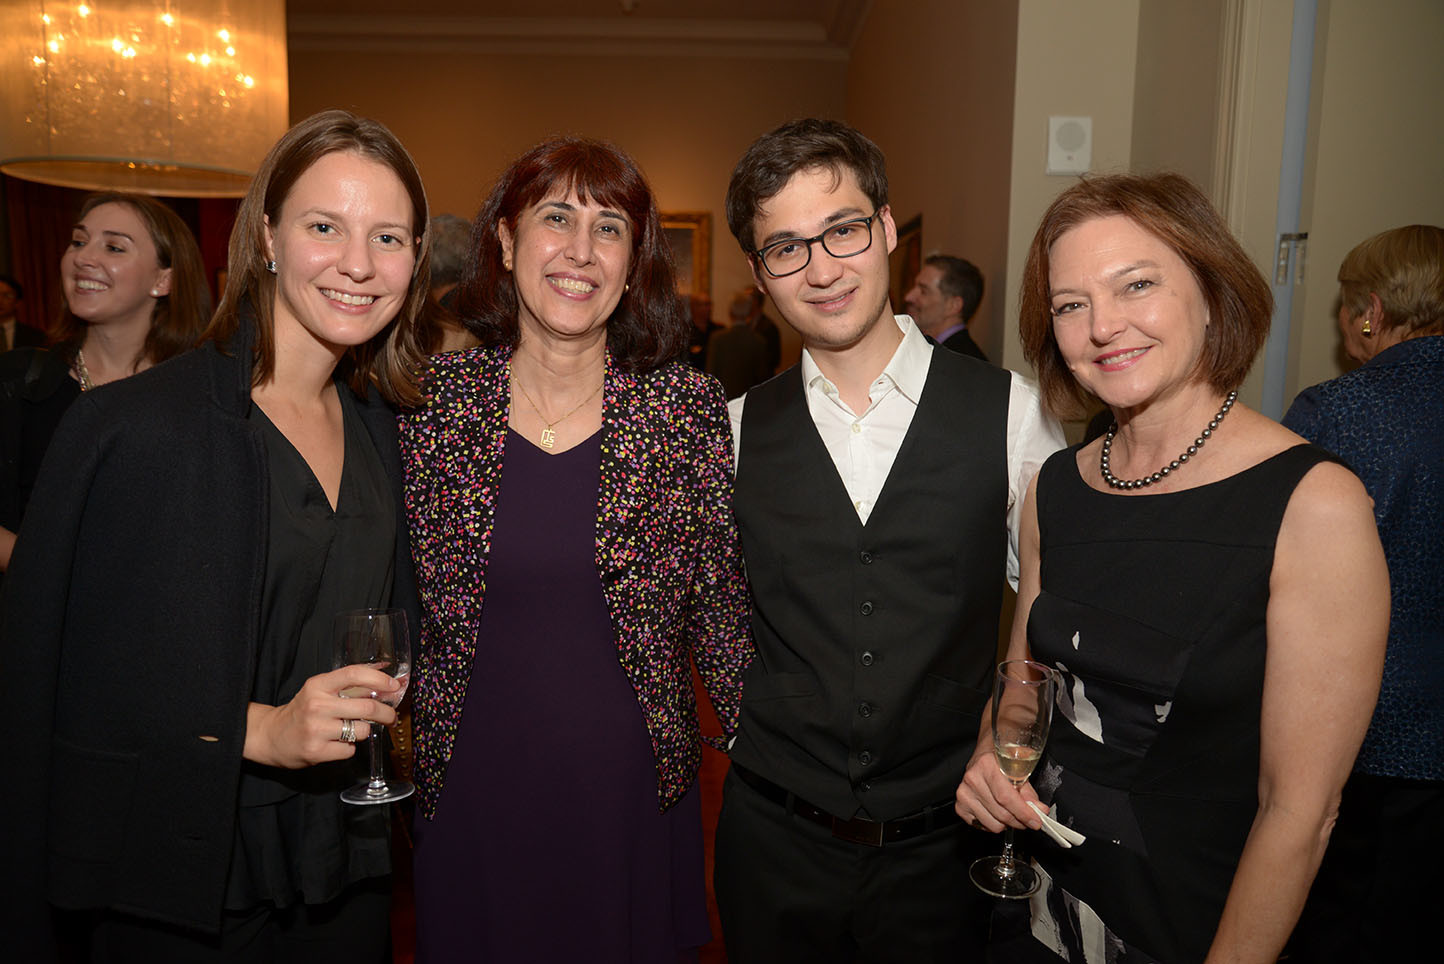 Shelley Pyers, CMS Board Member Nasrin Abdolali, Mark Schumann, Global Council Member Suzanne Vaucher